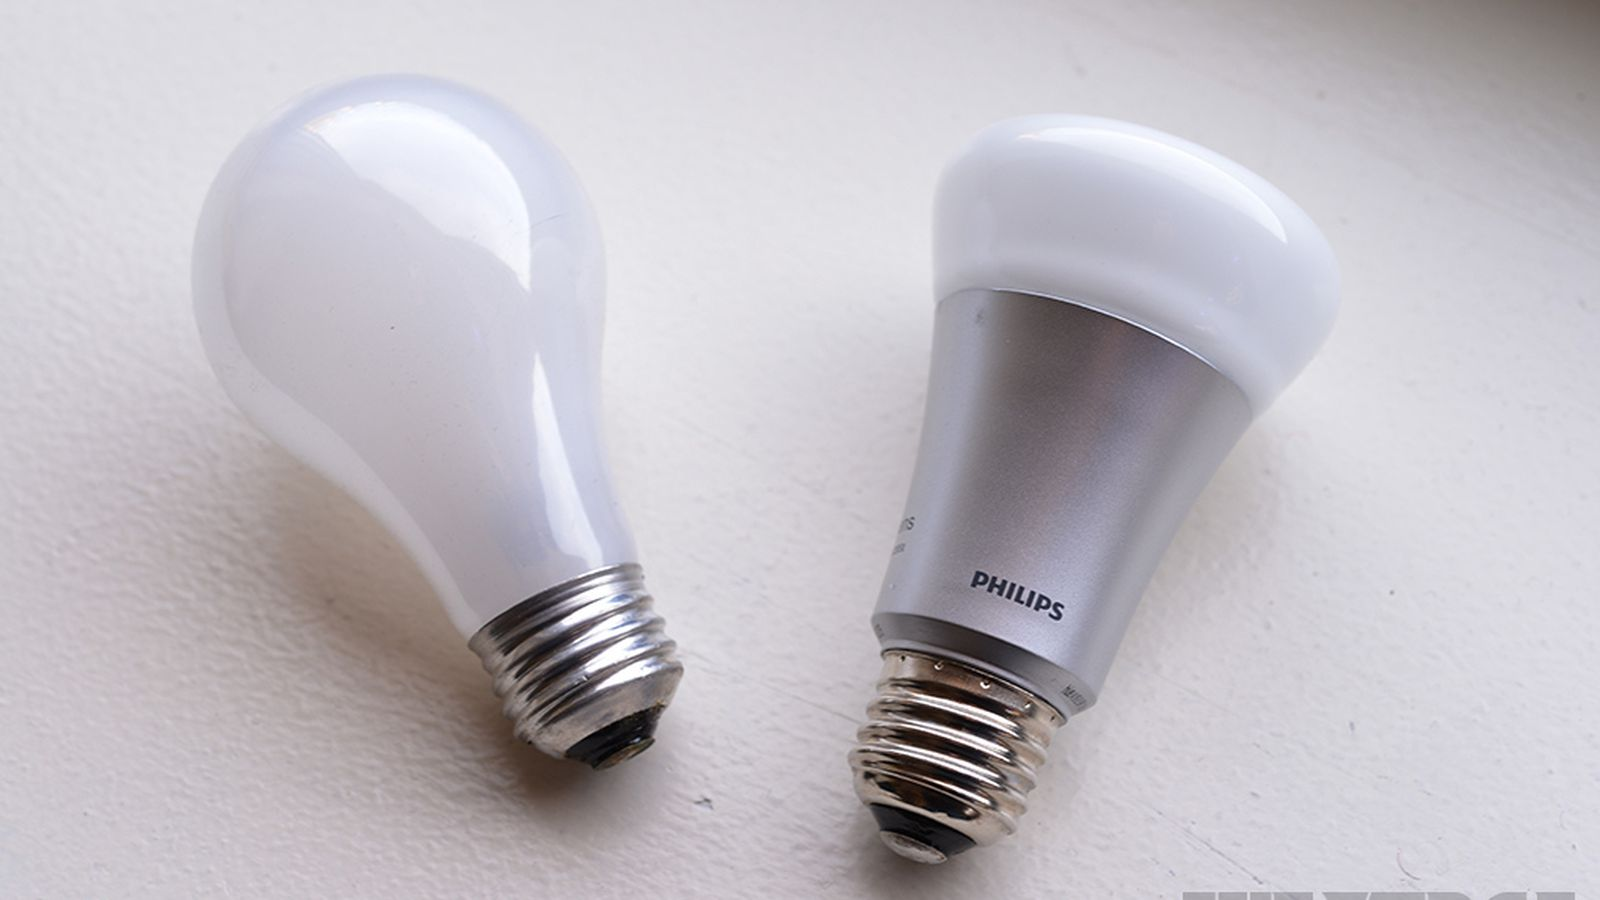 philips opens wireless multi hue lightbulb to app developers the verge. Black Bedroom Furniture Sets. Home Design Ideas